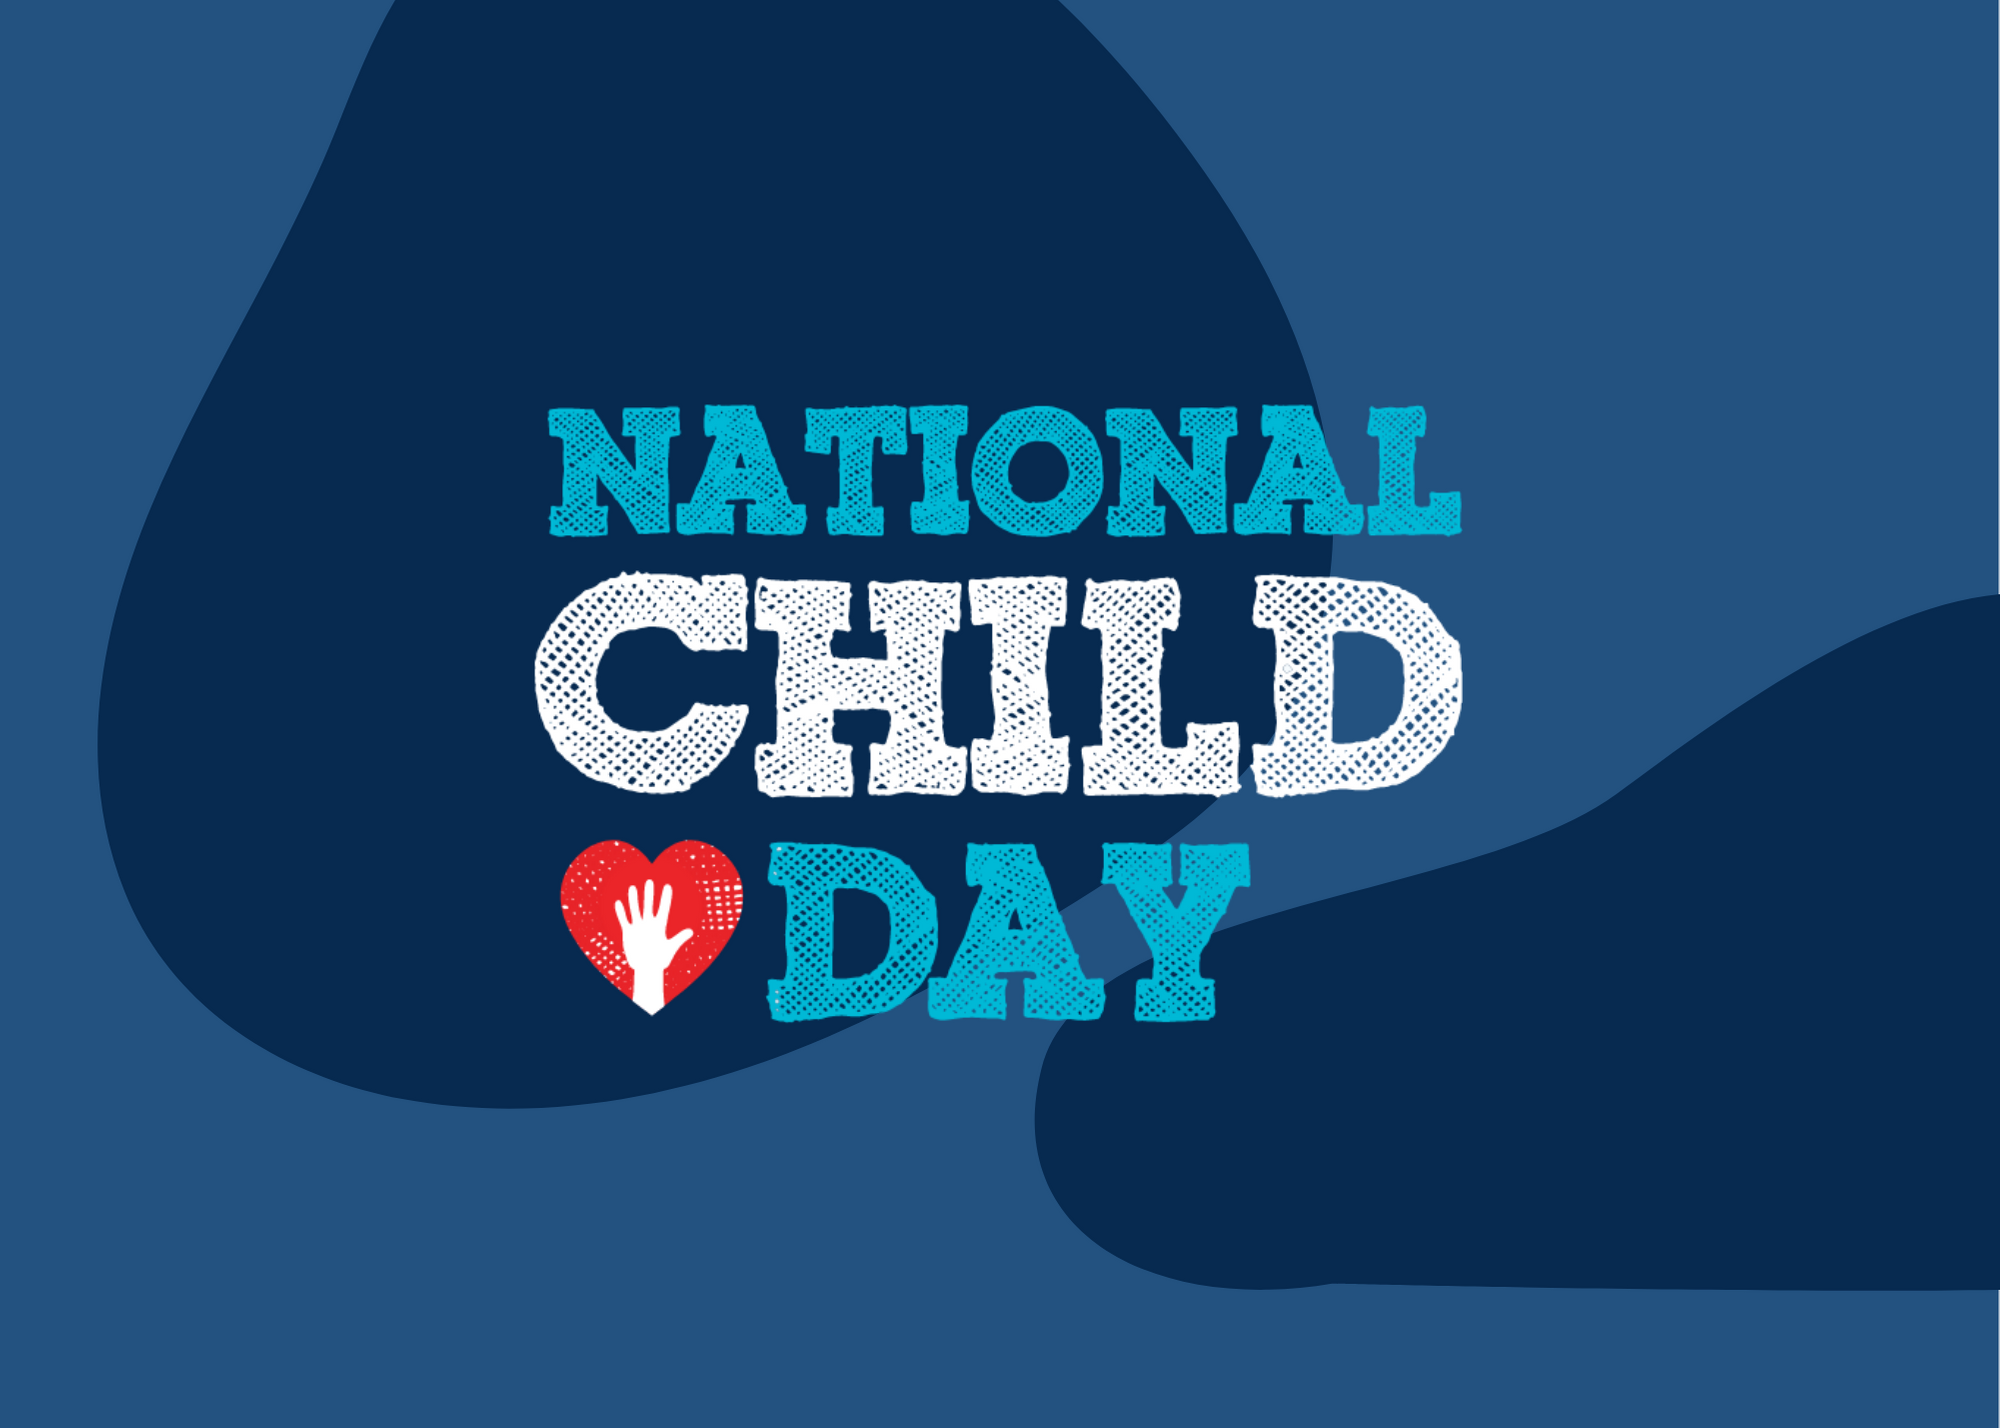 National Child Day is November 20th, 2020